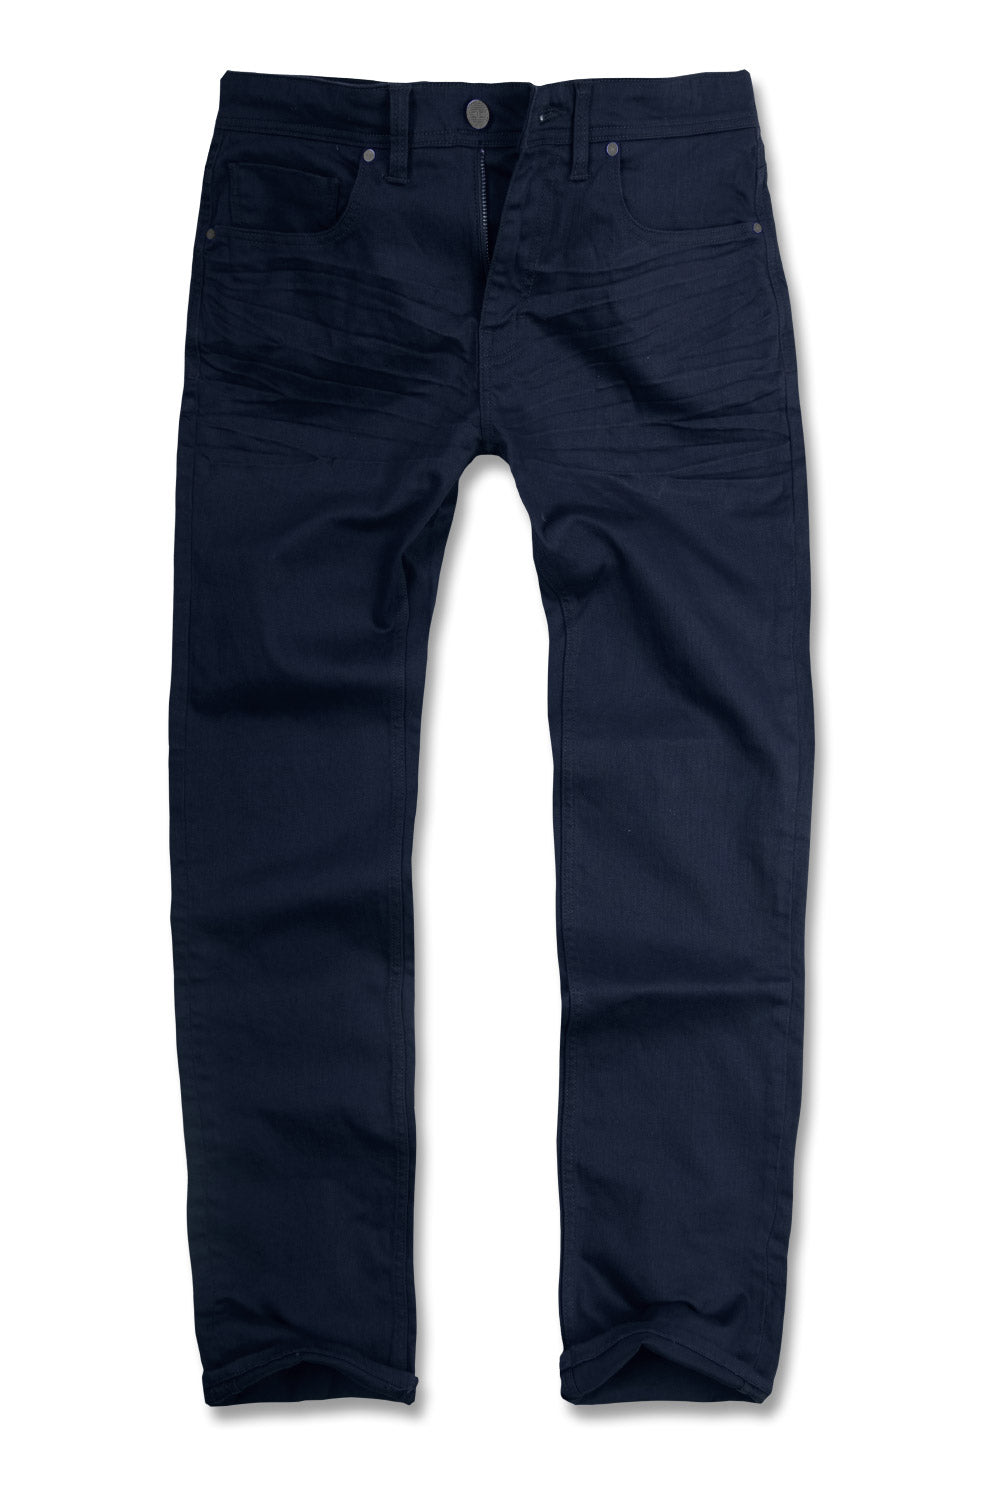 Jordan Craig - Big Men's Collins - Nashville Slub Twill Jeans